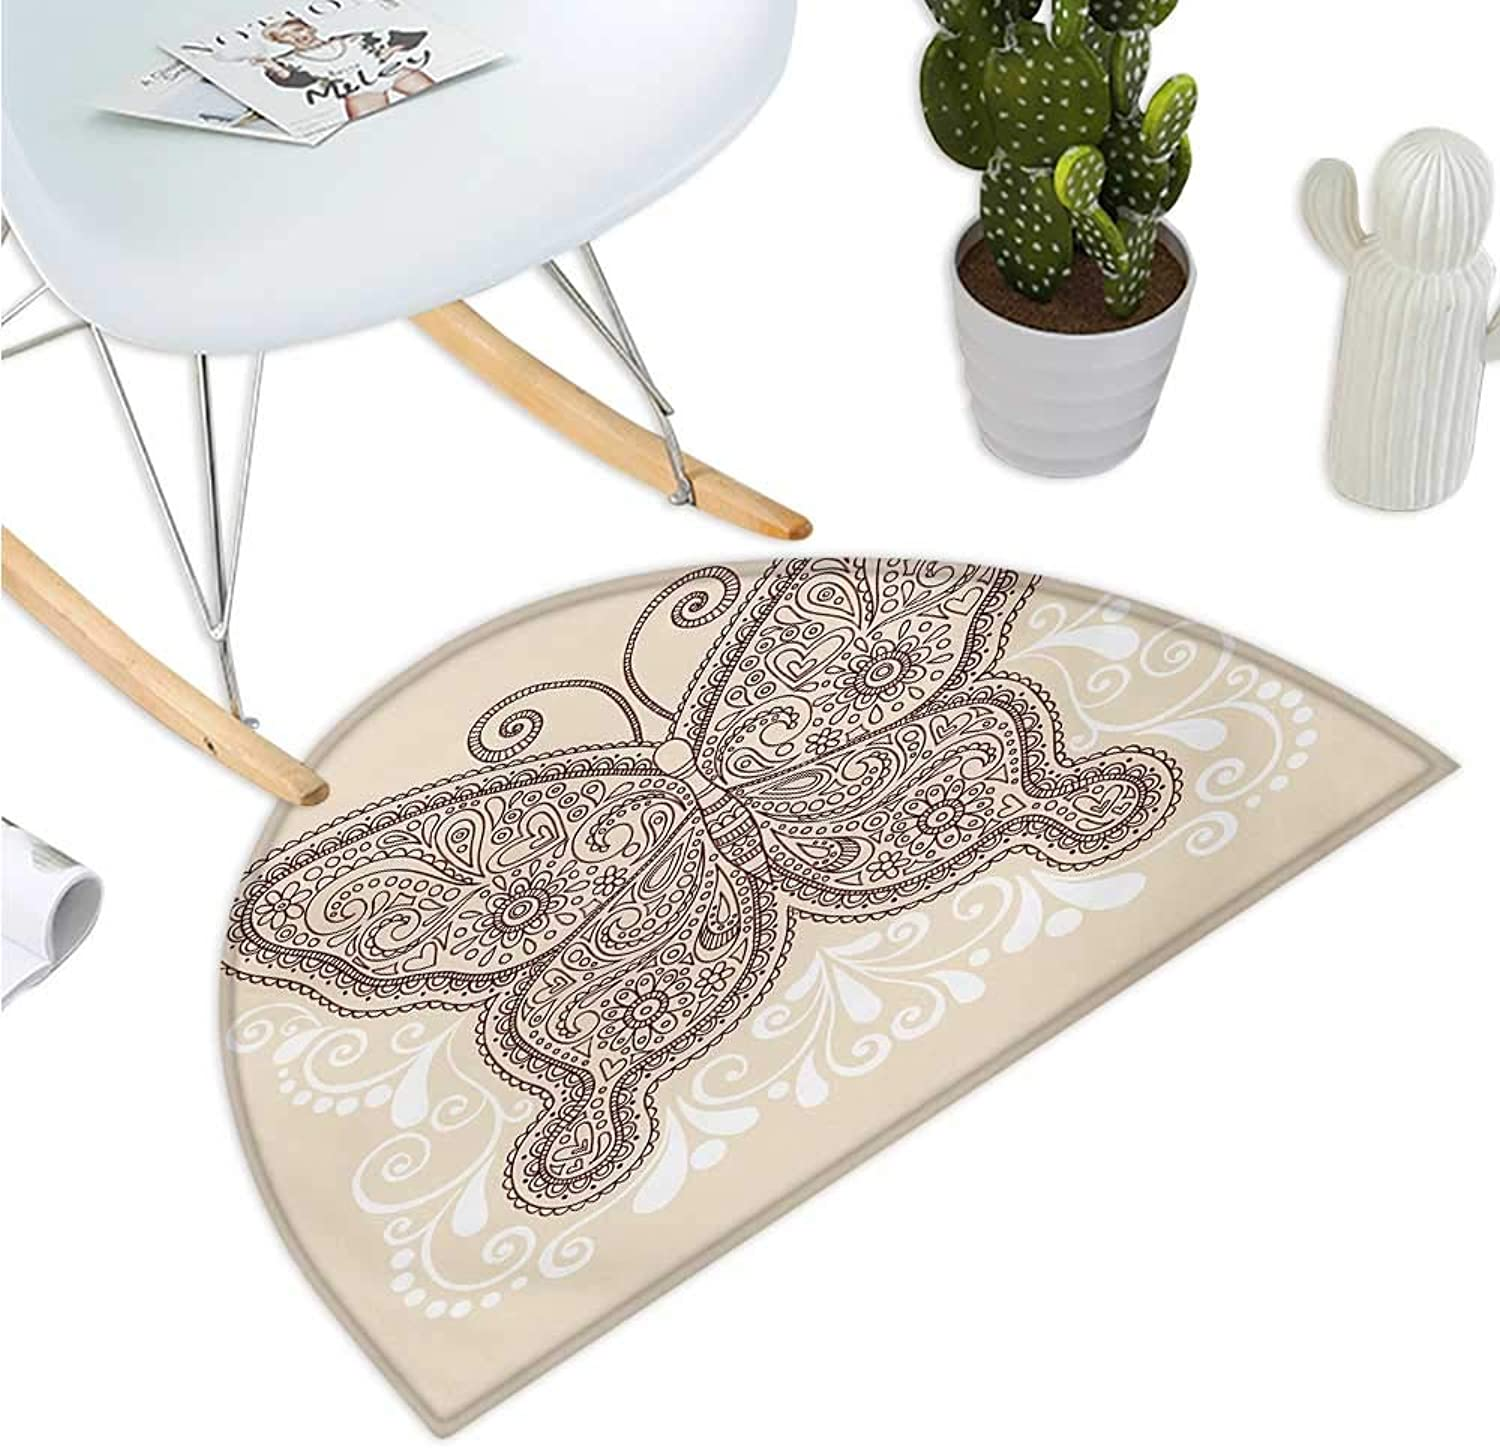 Henna Semicircular Cushion Hand Drawn Abstract Butterfly Various Design Elements Flowers Hearts Halfmoon doormats H 43.3  xD 64.9  Ivory Chesnut Brown White